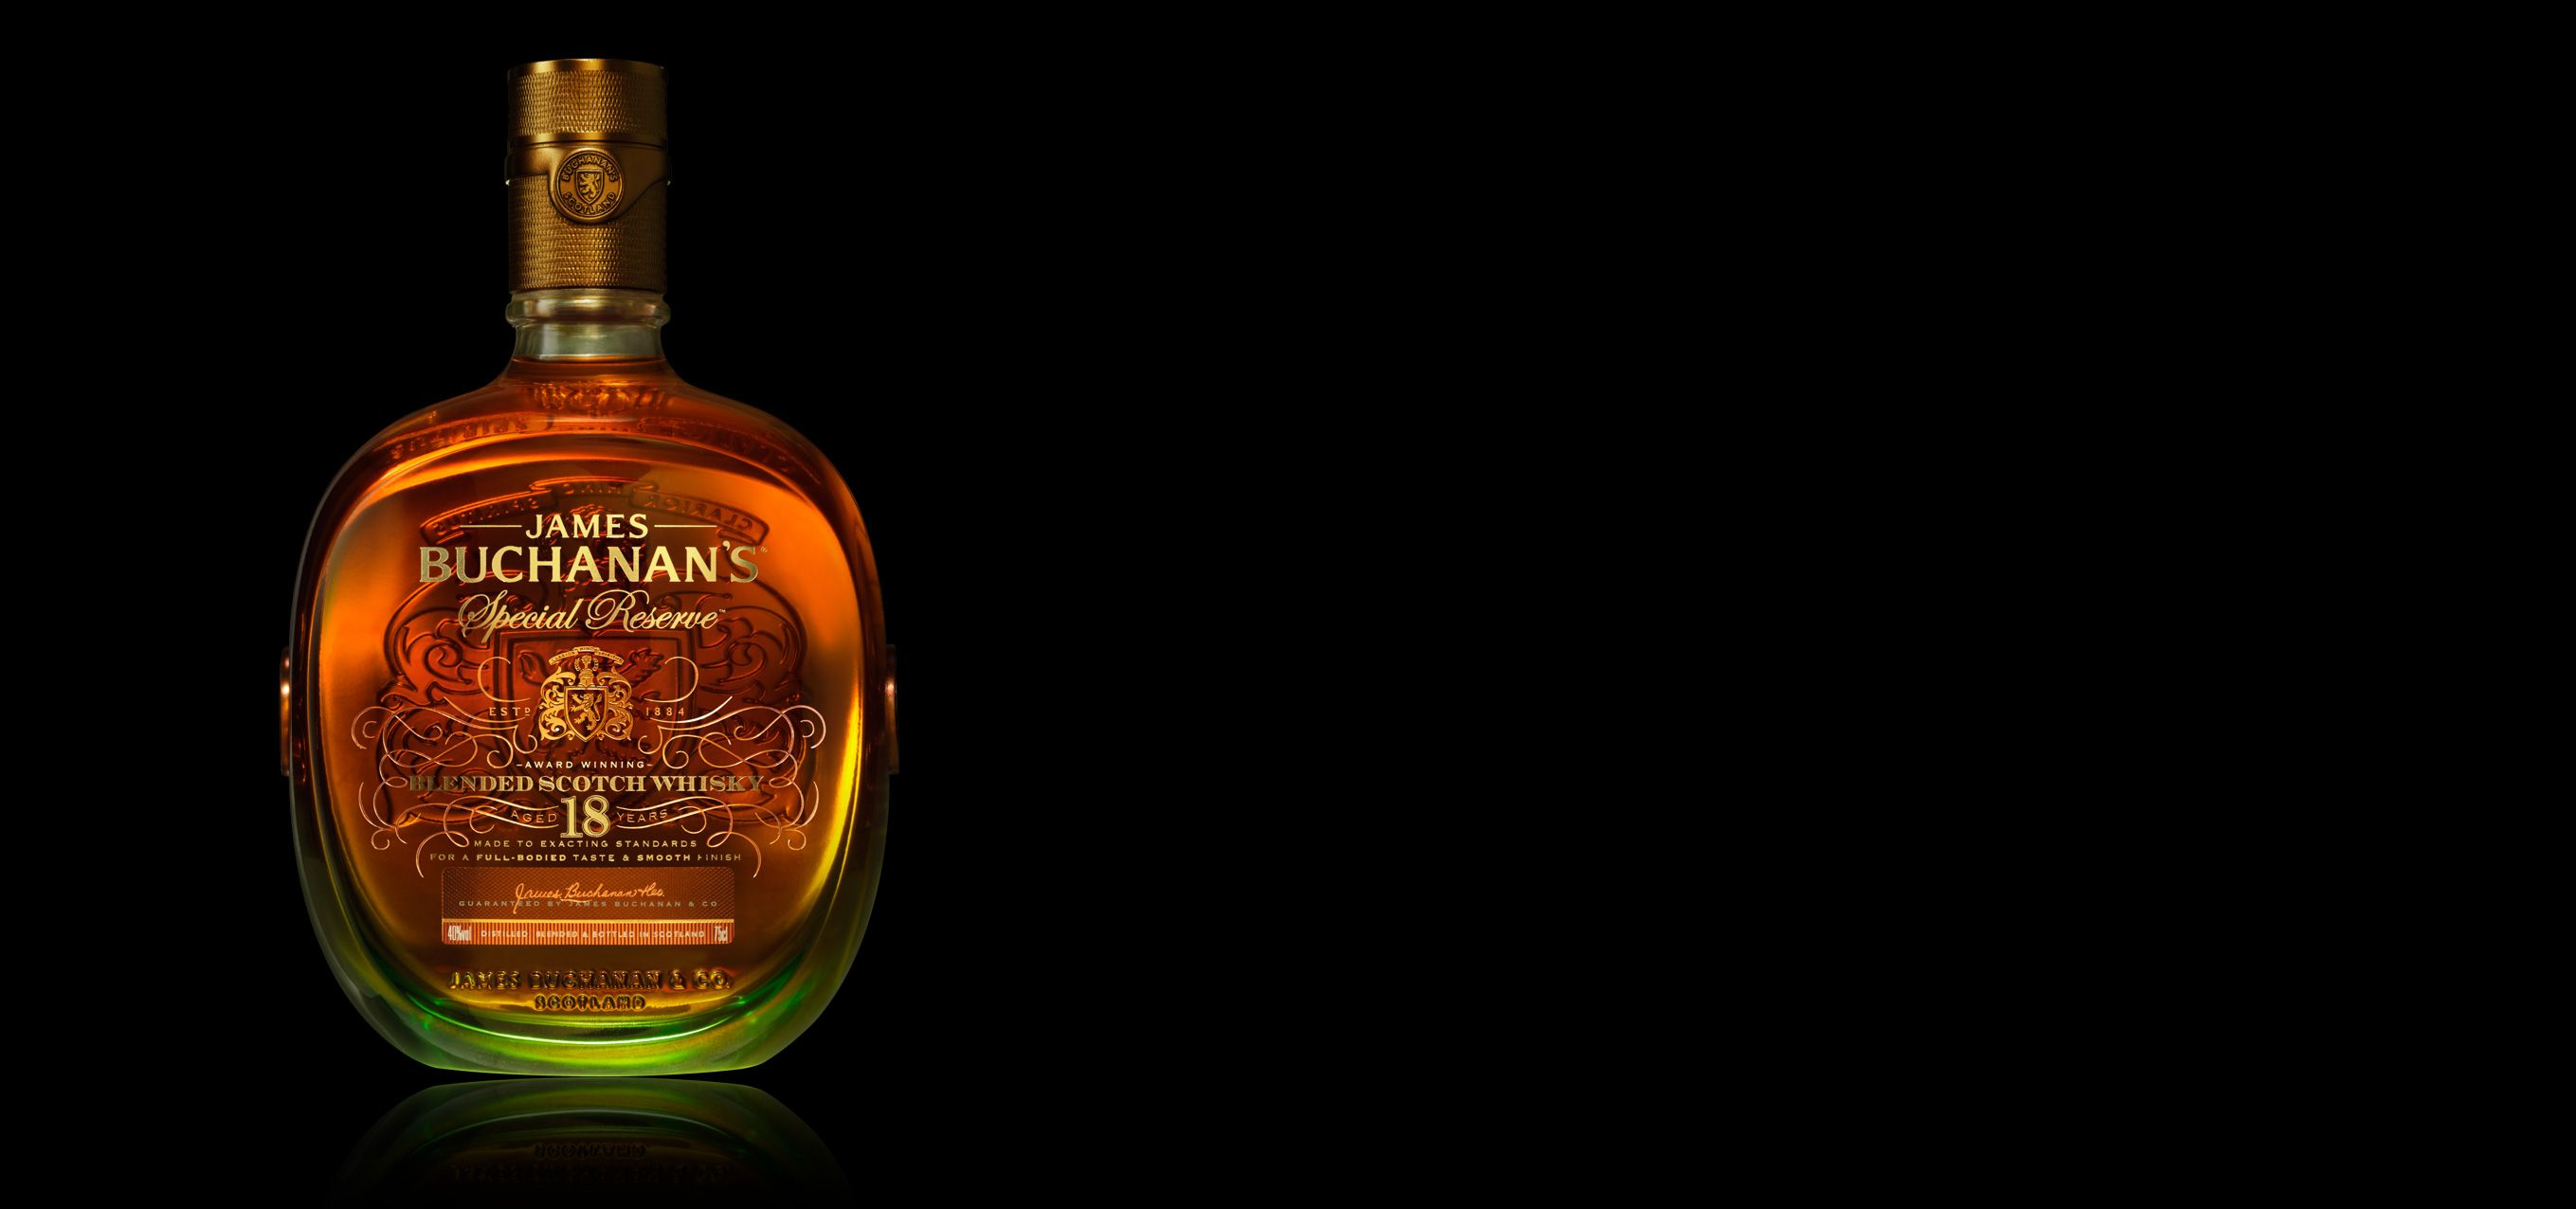 Buchanans 18 Year Special Reserve Buy Online Or Send As A Gift